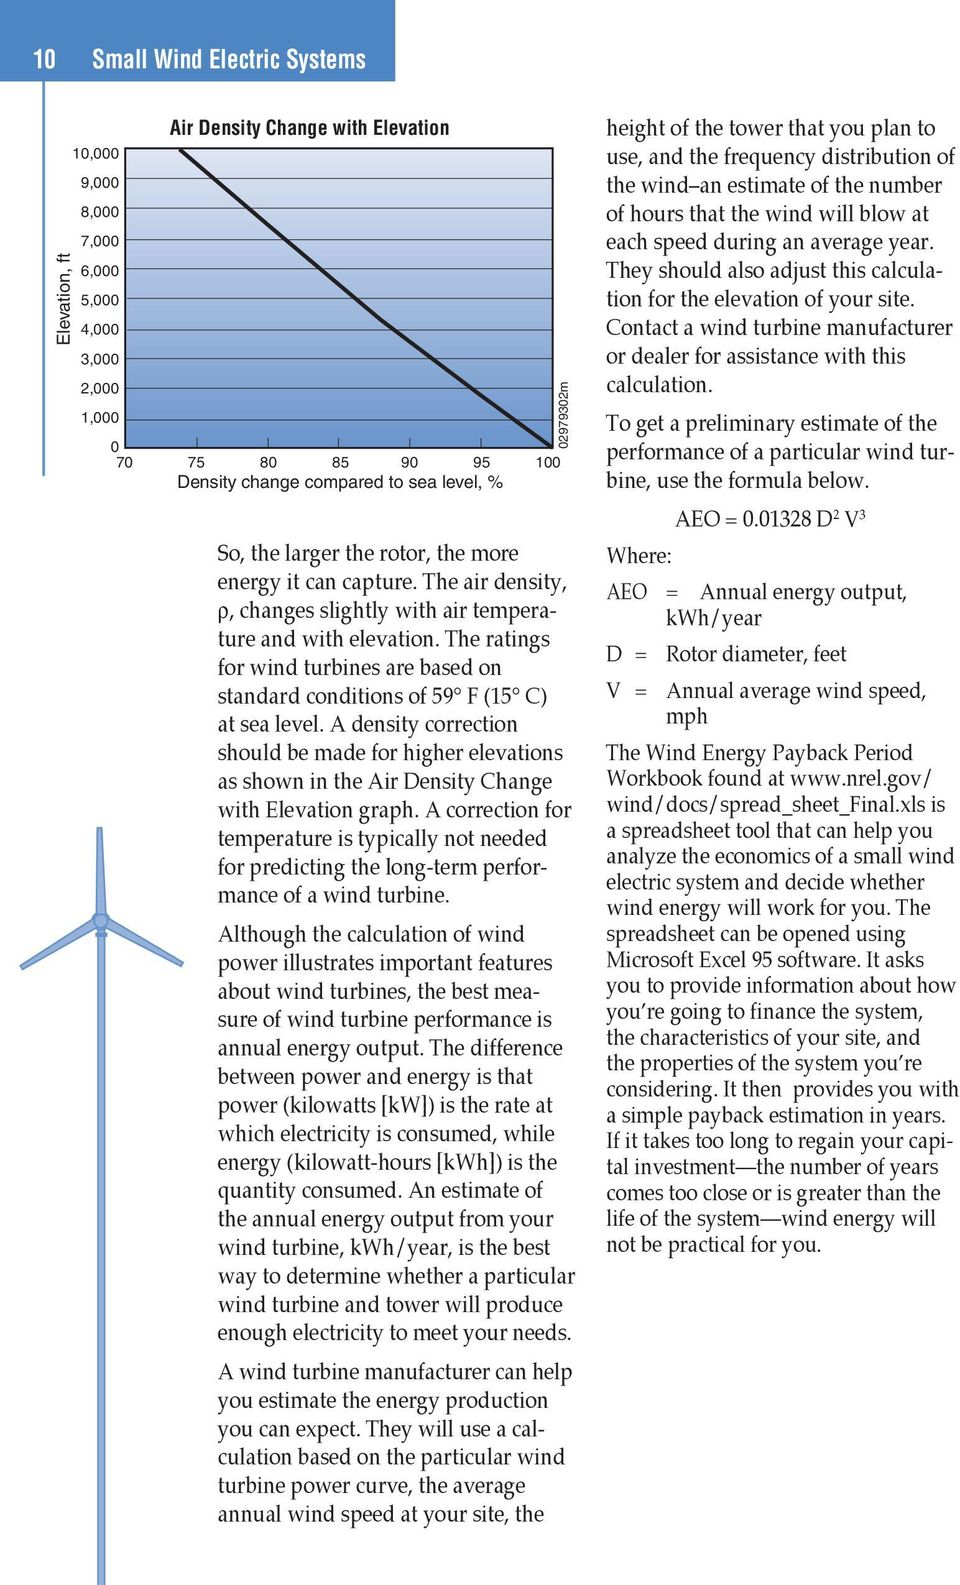 The ratings for wind turbines are based on standard conditions of 59 F (15 C) at sea level.